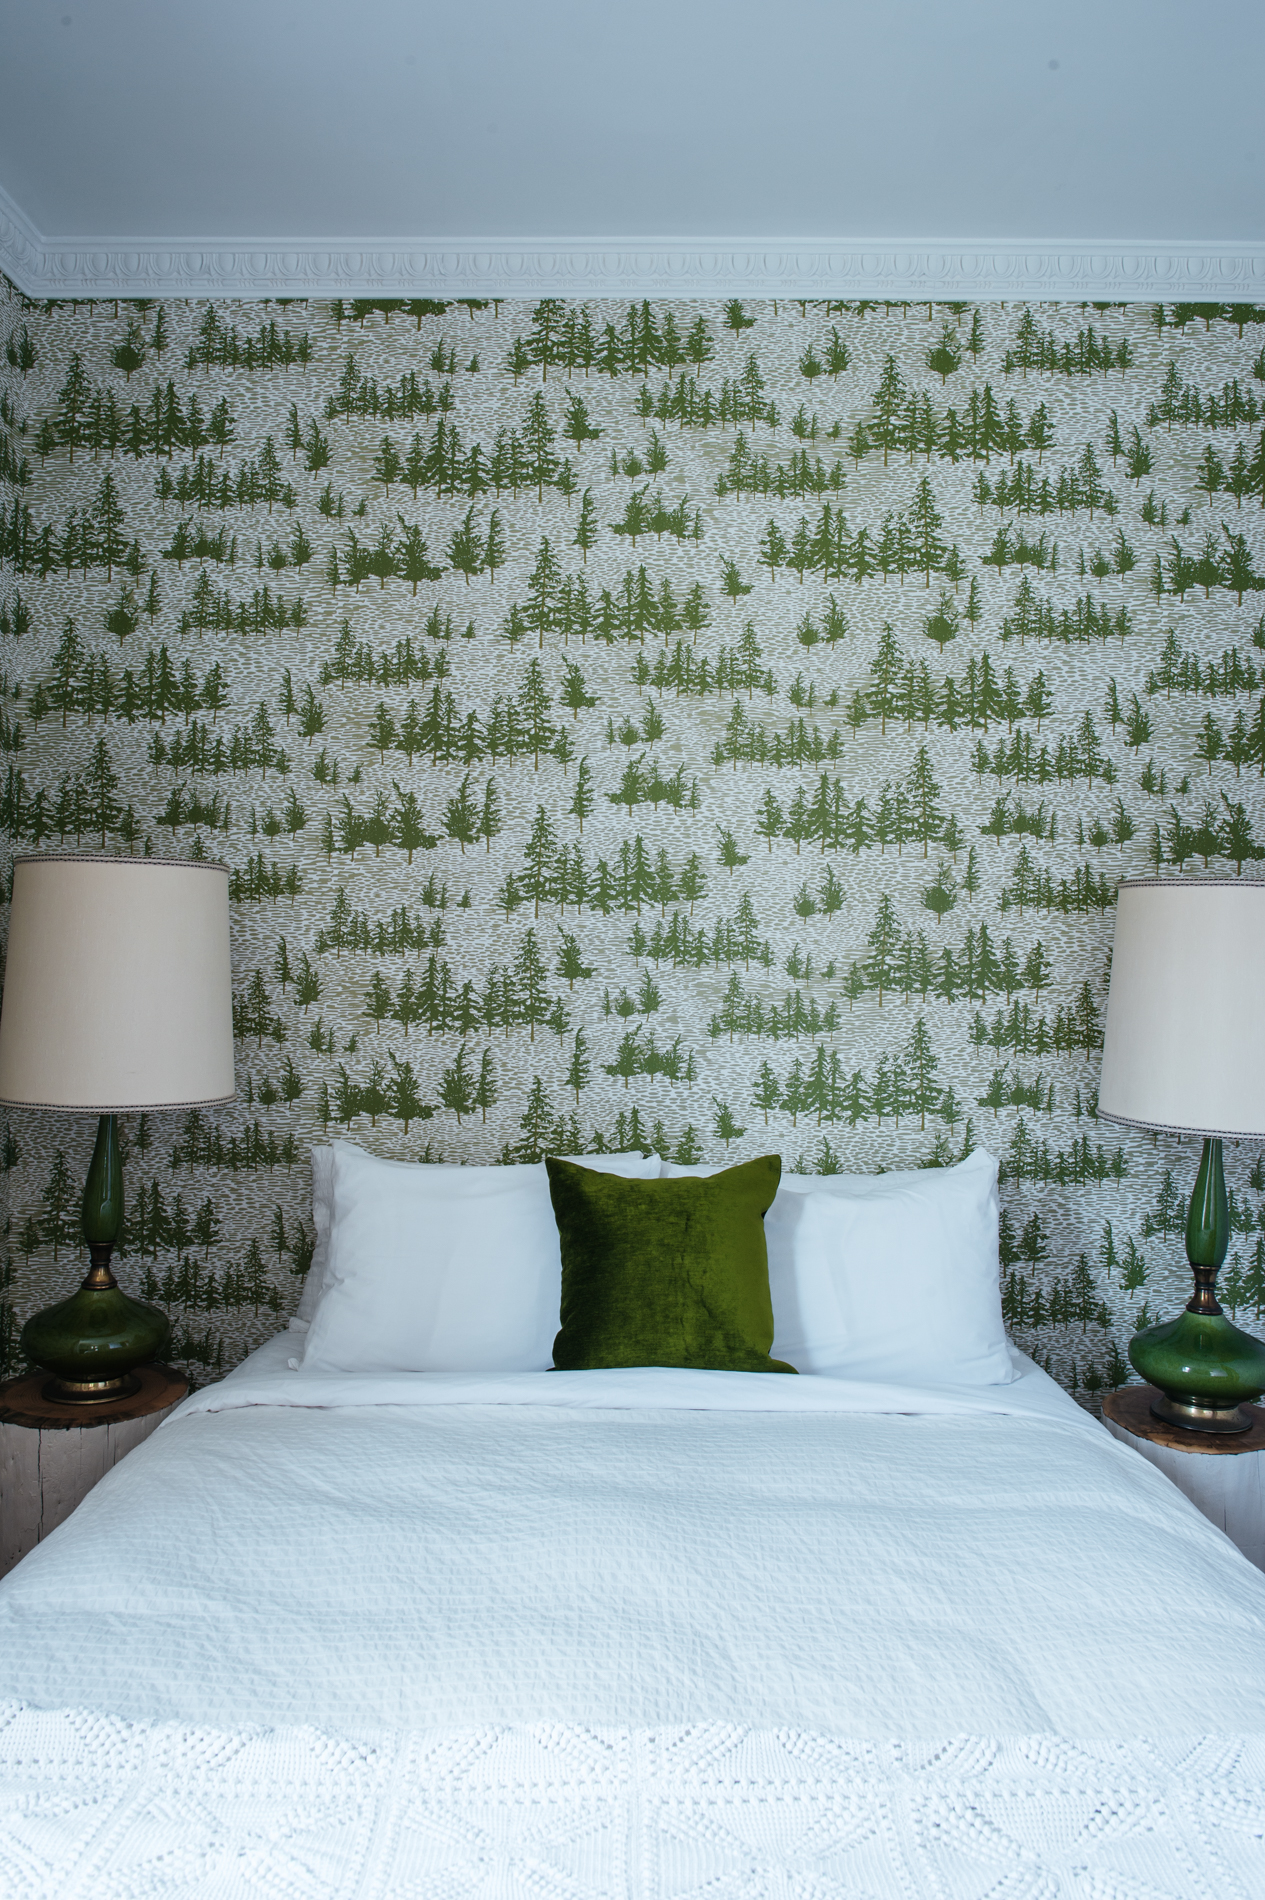 Kate Golding Chcukery Hill wallpaper // Modern wallcoverings and interior decor.